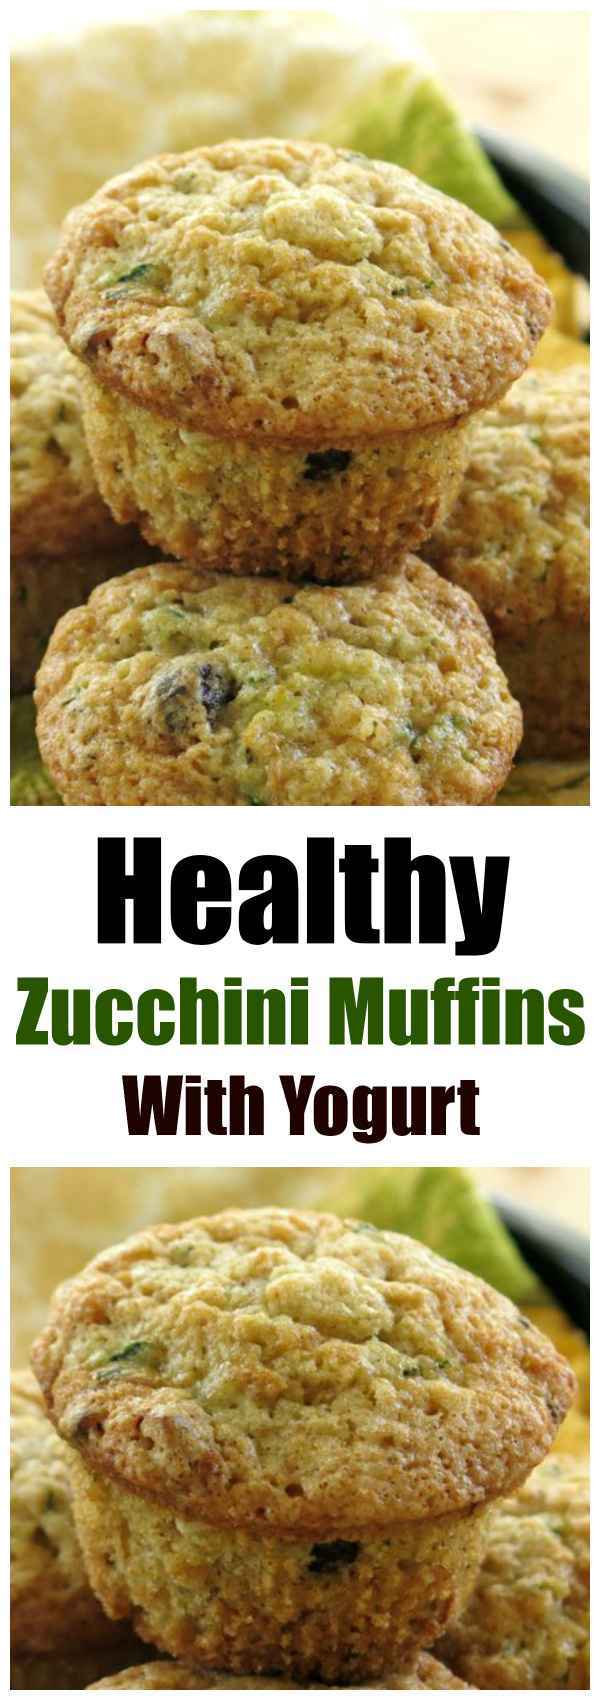 Healthy Zucchini Muffins got a makeover and use yogurt instead of oil. This is just the best recipe! These are delicious and soooo easy to make.